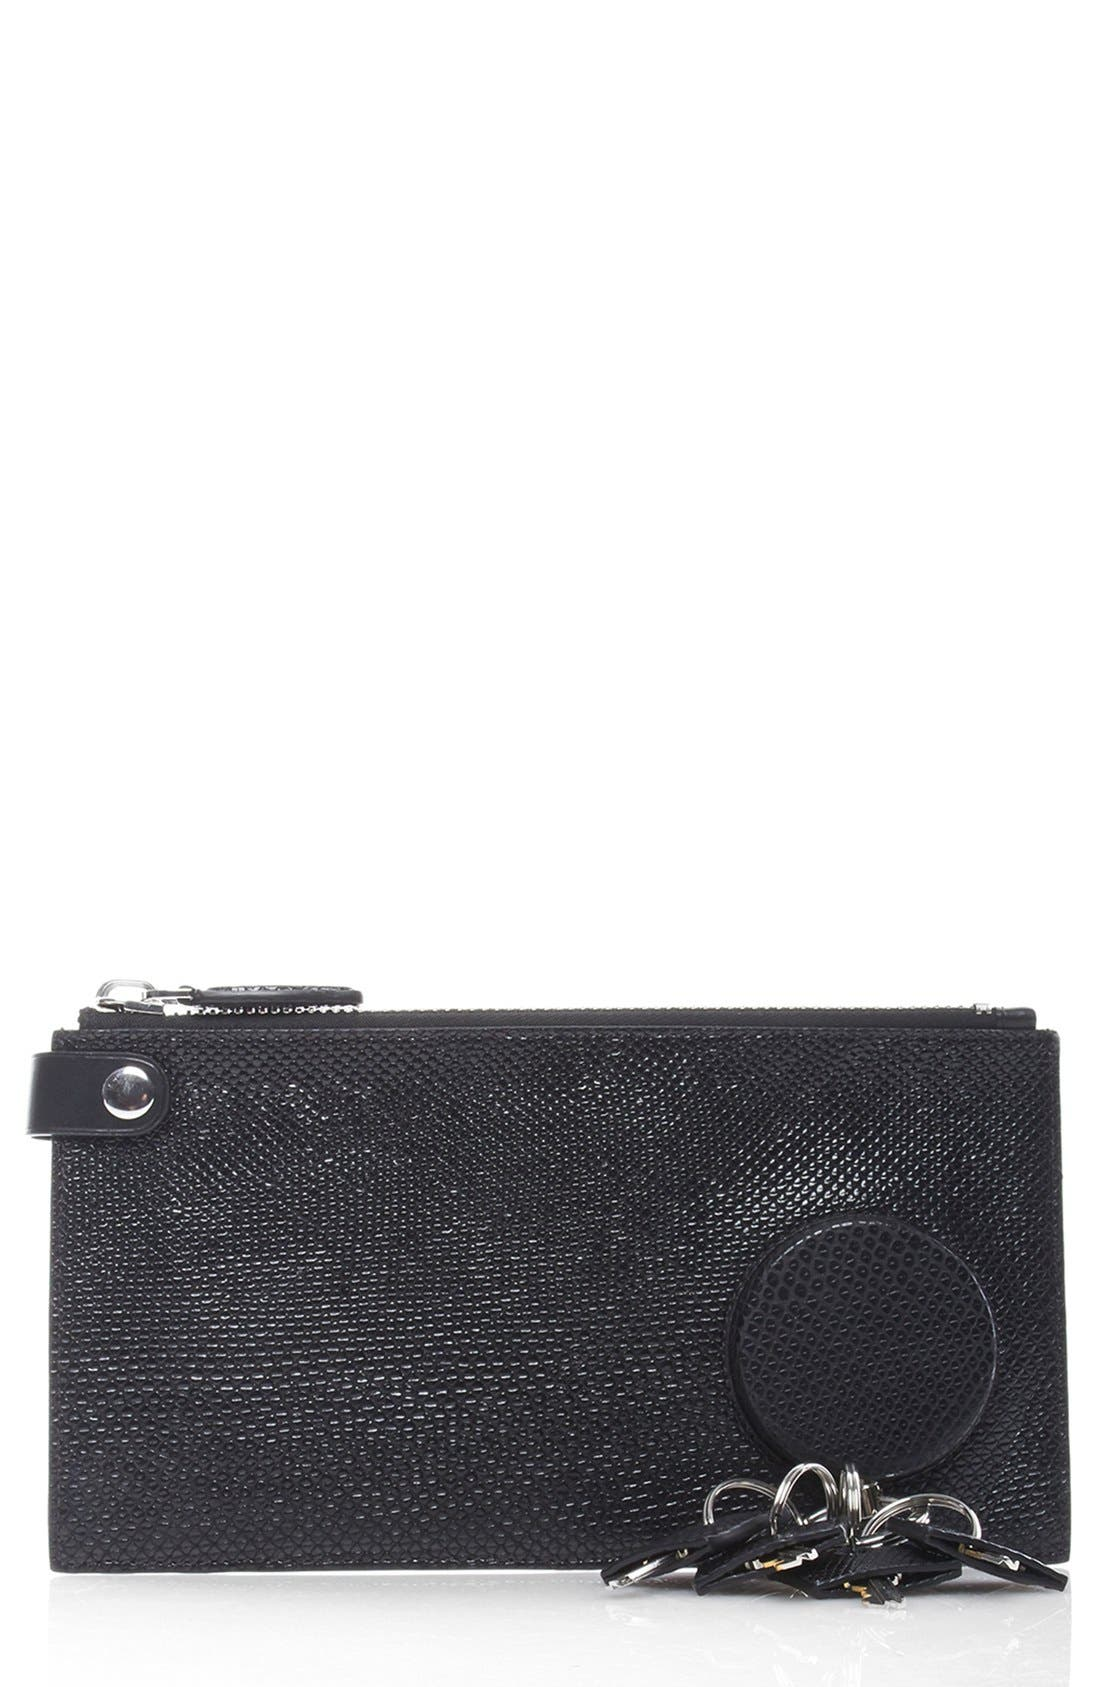 Alternate Image 1 Selected - Alexander Wang 'Runway' Key Clutch